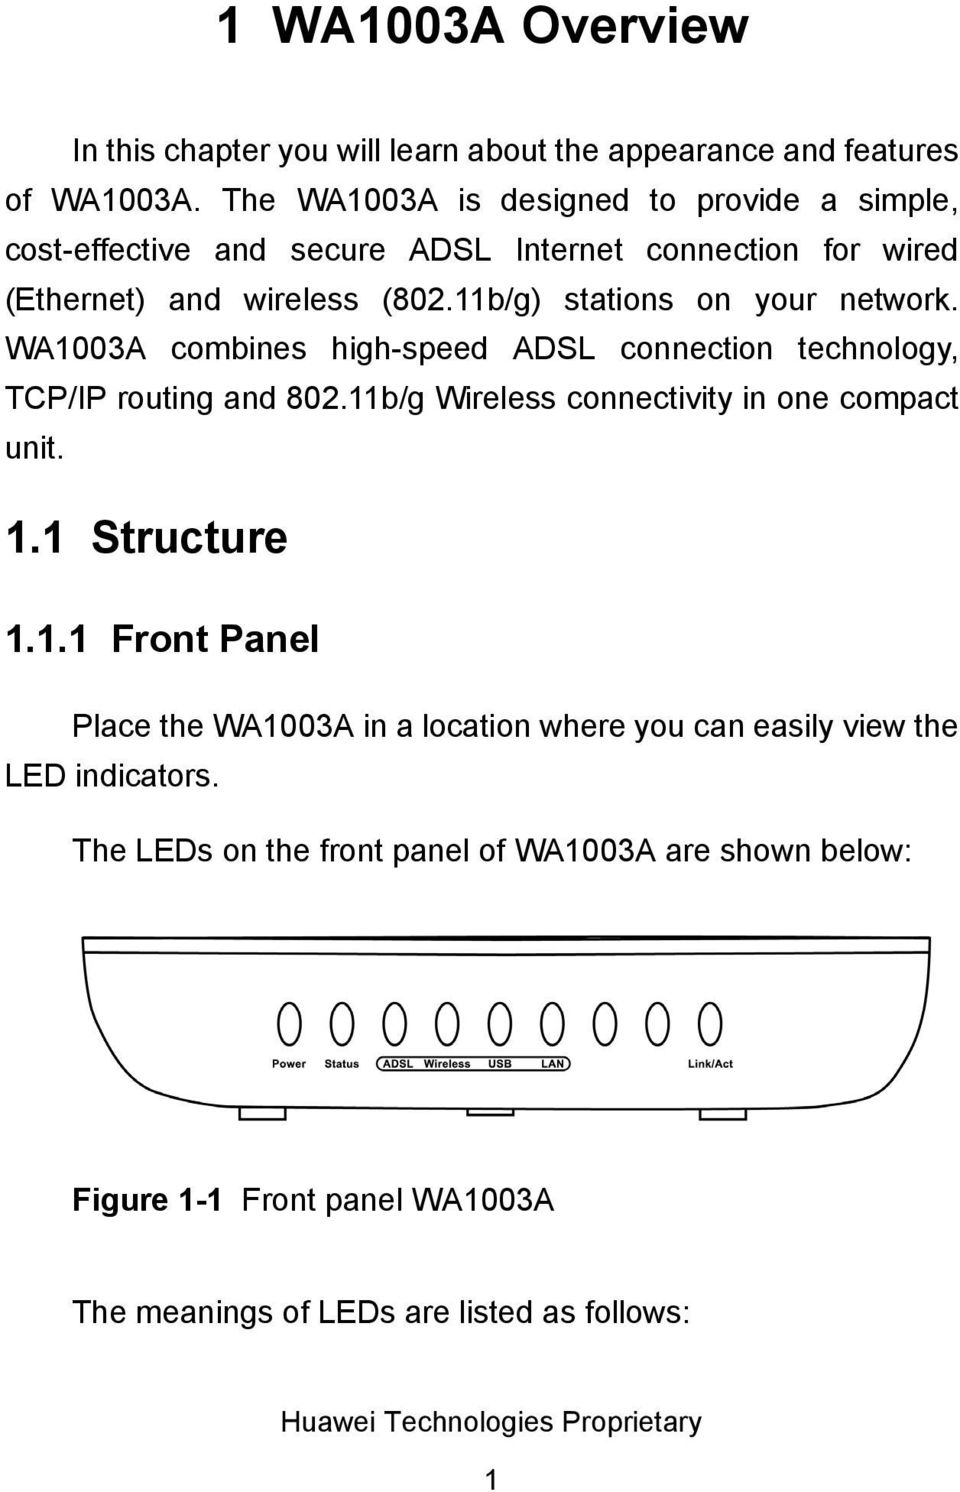 11b/g) stations on your network. WA1003A combines high-speed ADSL connection technology, TCP/IP routing and 802.